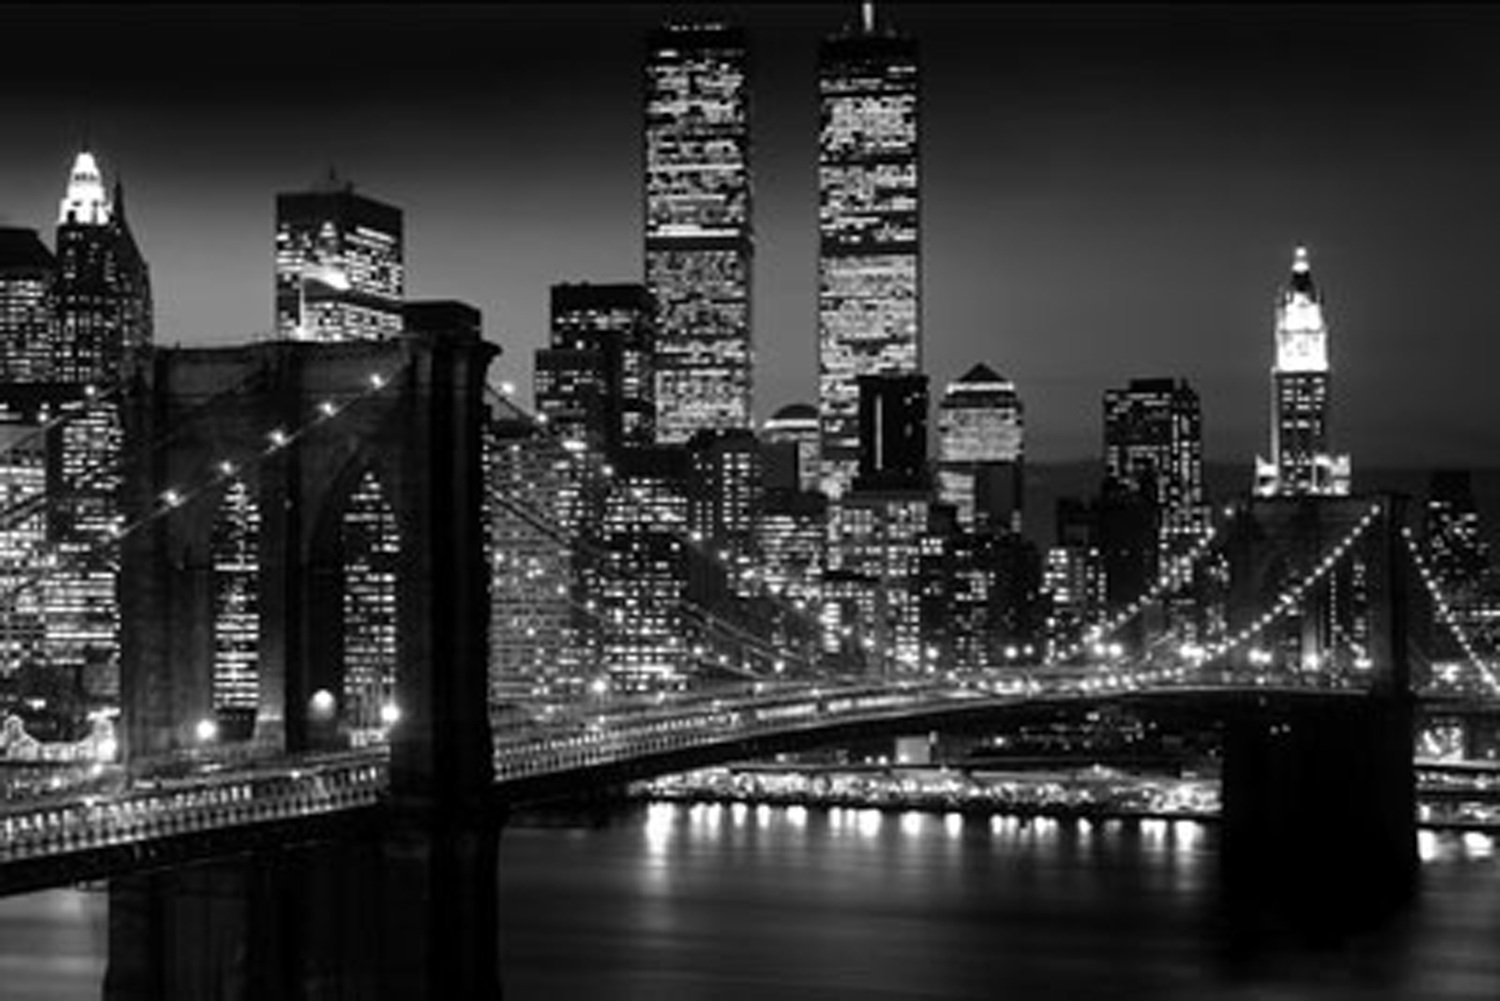 new york city brooklyn bridge night skyline 24 x 36 print poster twin towers ebay. Black Bedroom Furniture Sets. Home Design Ideas